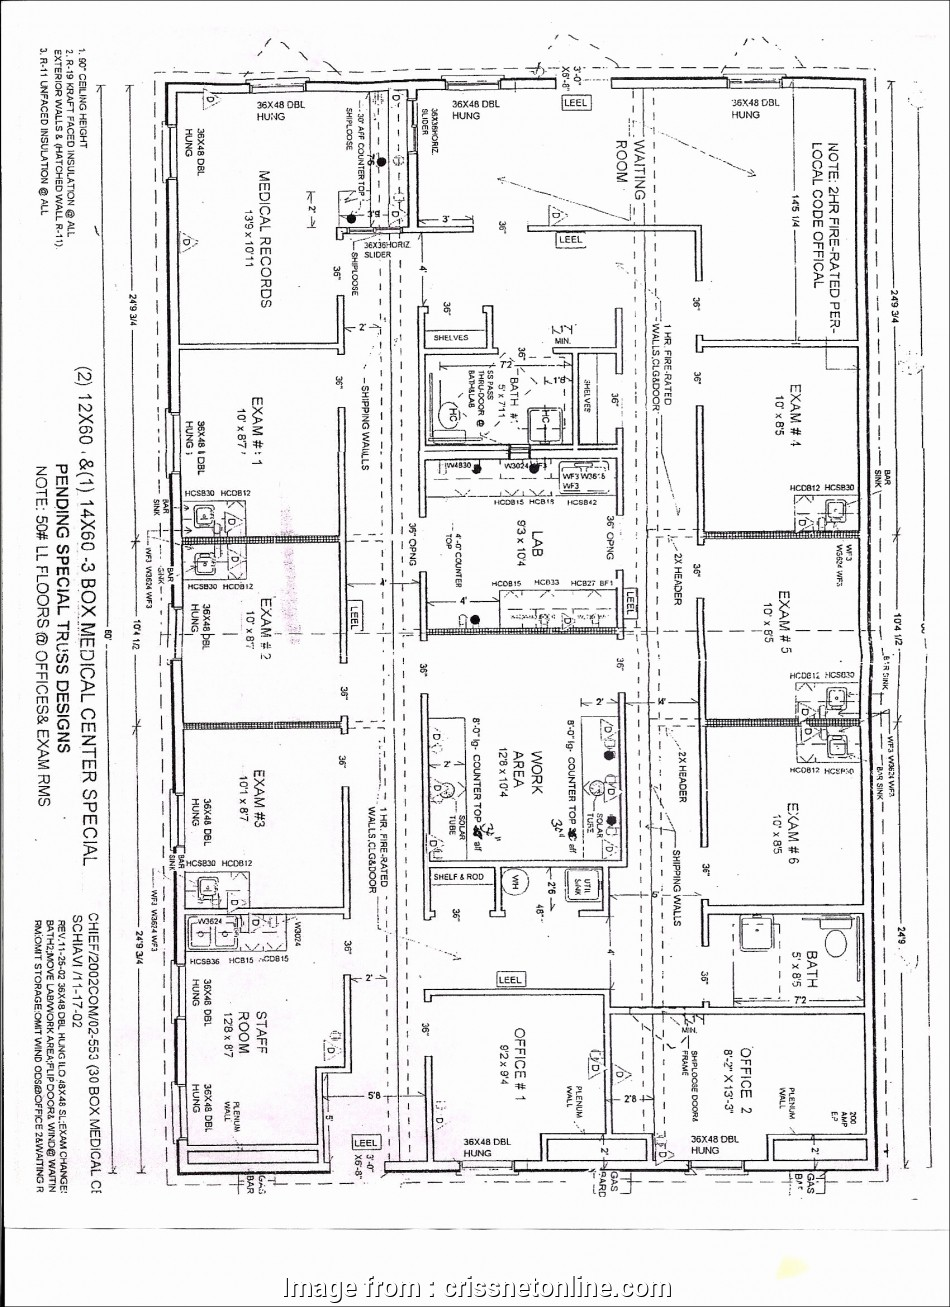 modular home electrical wiring Double Wide Mobile Home Electrical Wiring Diagram Beautiful Quadruple Wide Mobile Home Unique Triple Wide Modular 11 Brilliant Modular Home Electrical Wiring Solutions